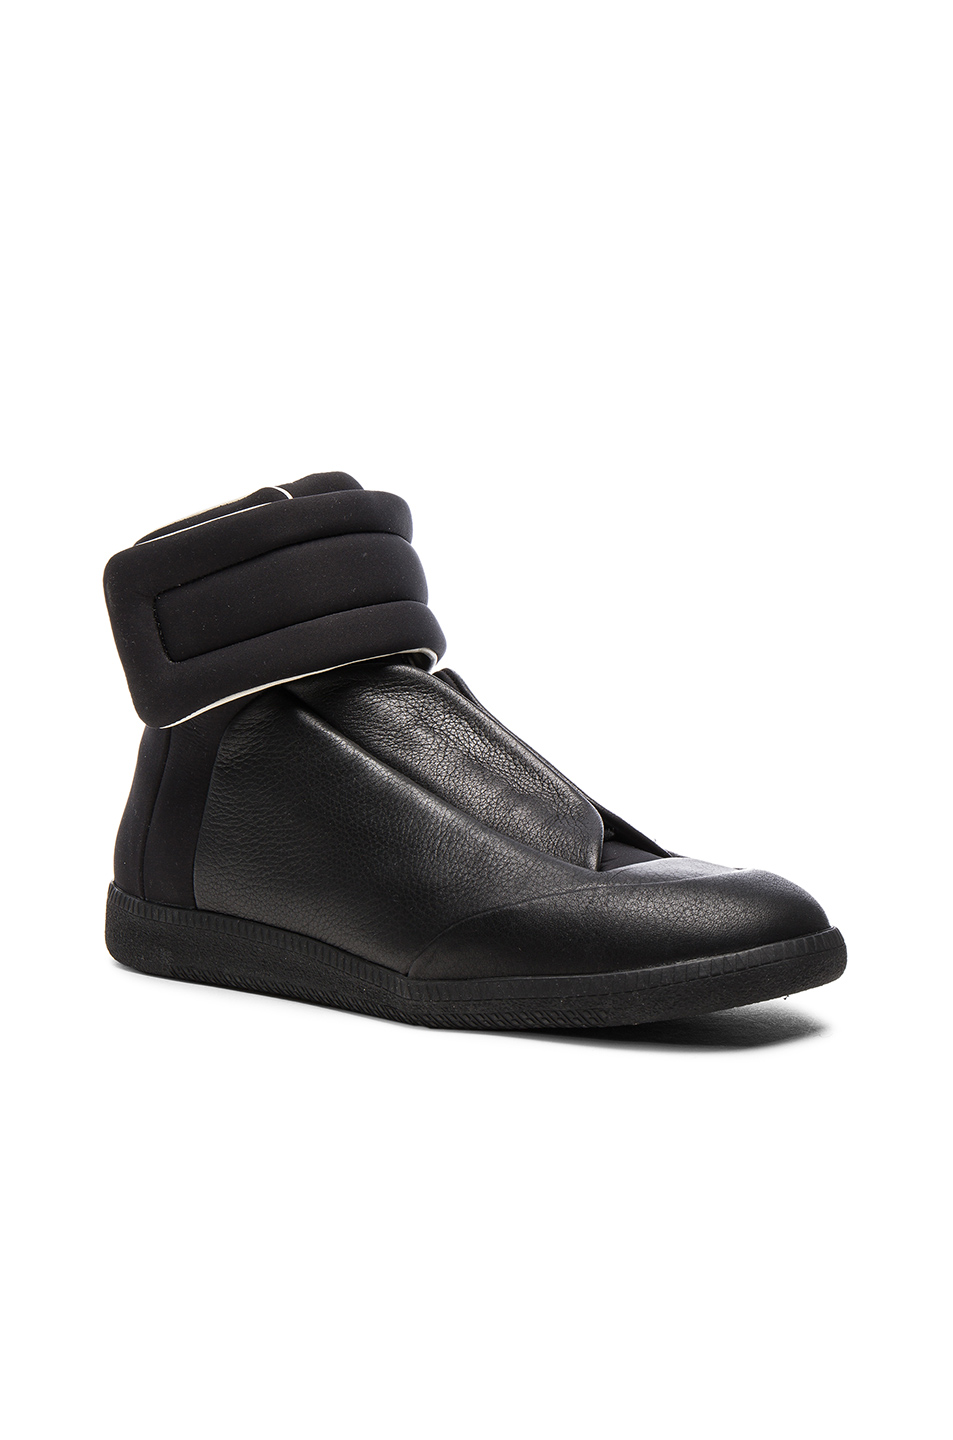 Maison Margiela Future High Top Sneakers in Black